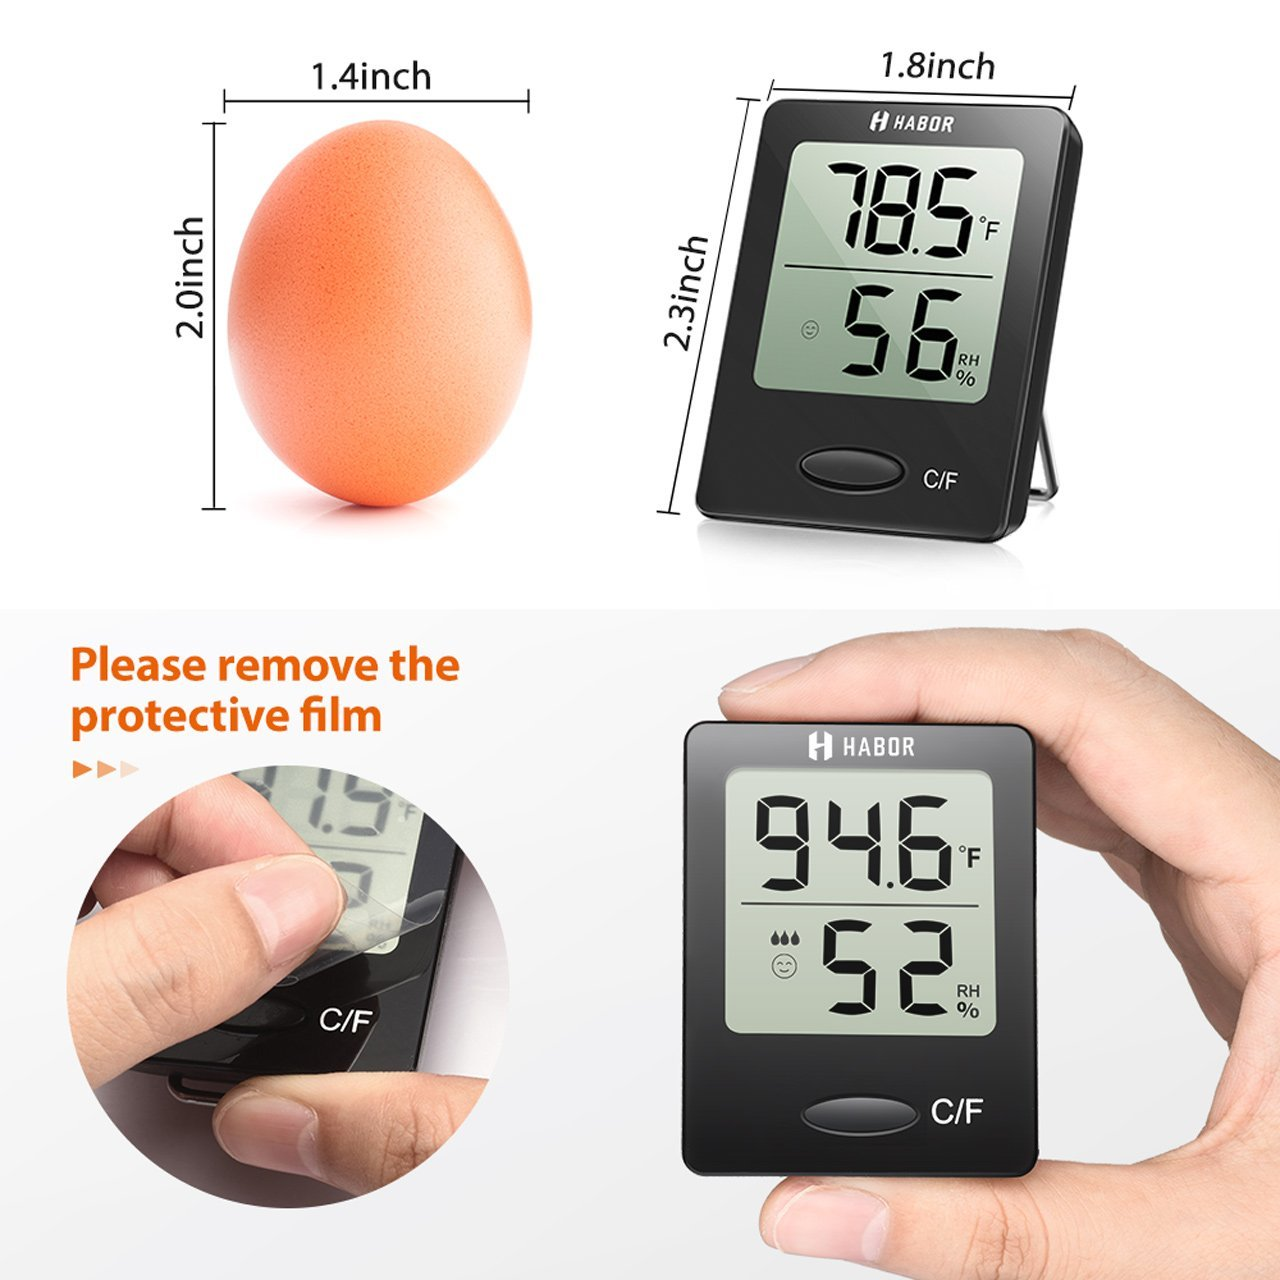 Habor 2 Pack Digital Hygrometer Indoor Thermometer Humidity Gauge Stand Wall Hanging Magnet Greenhouse House Kitchen Car by Habor (Image #2)